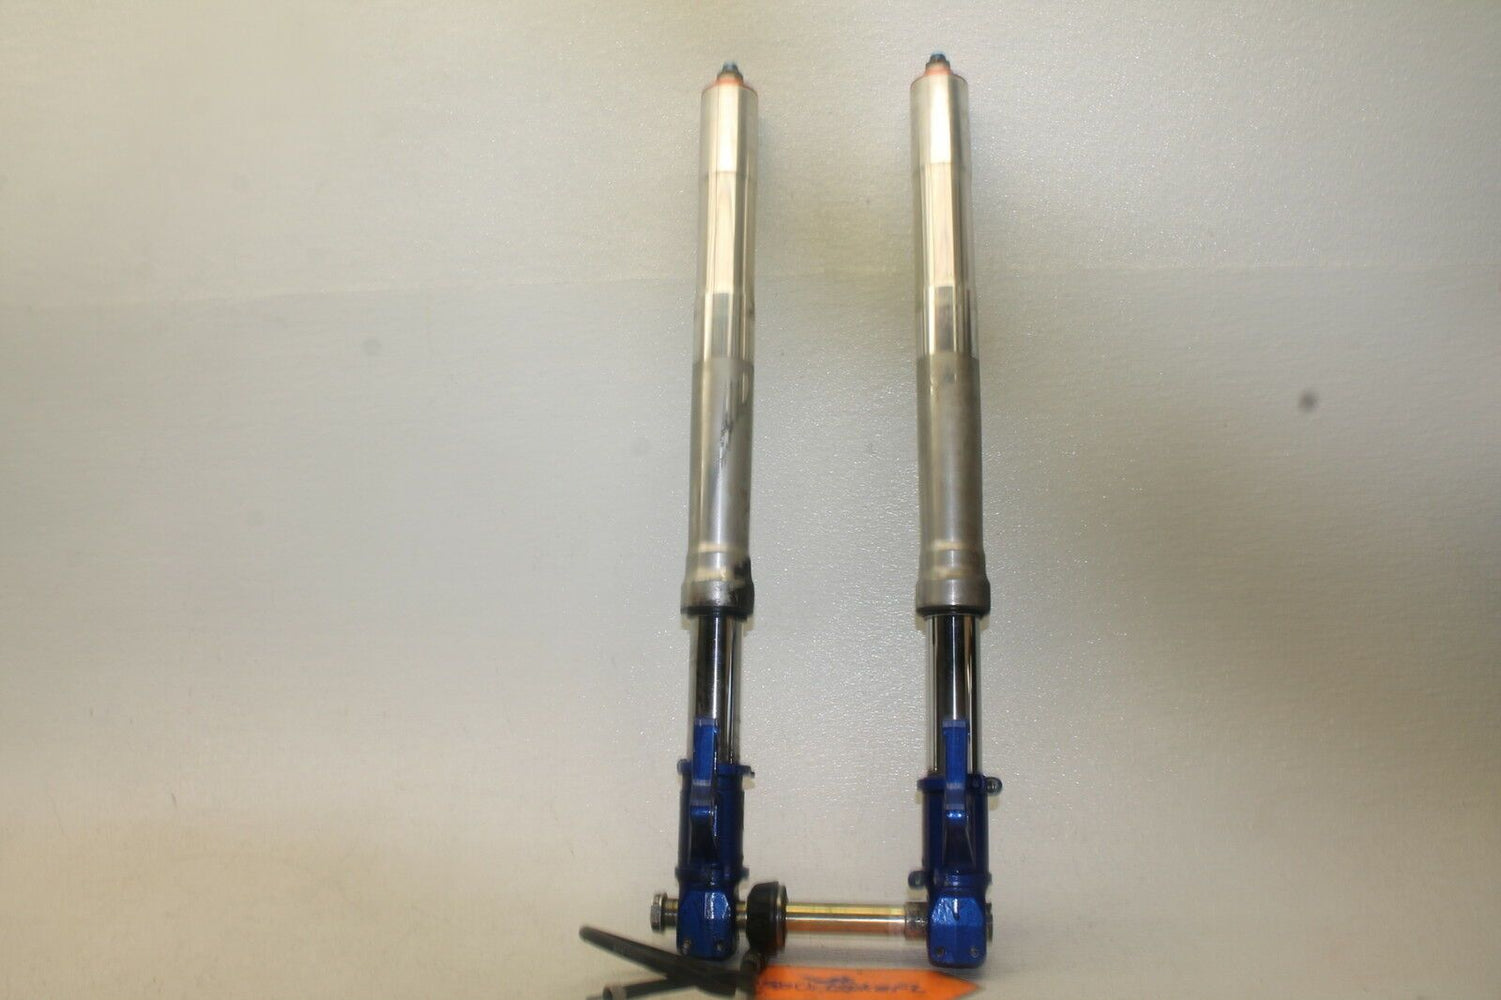 98-02 DUCATI 748 748S BIPOSTO OEM FRONT END FORKS SUSPENSION AXLE shocks 2002